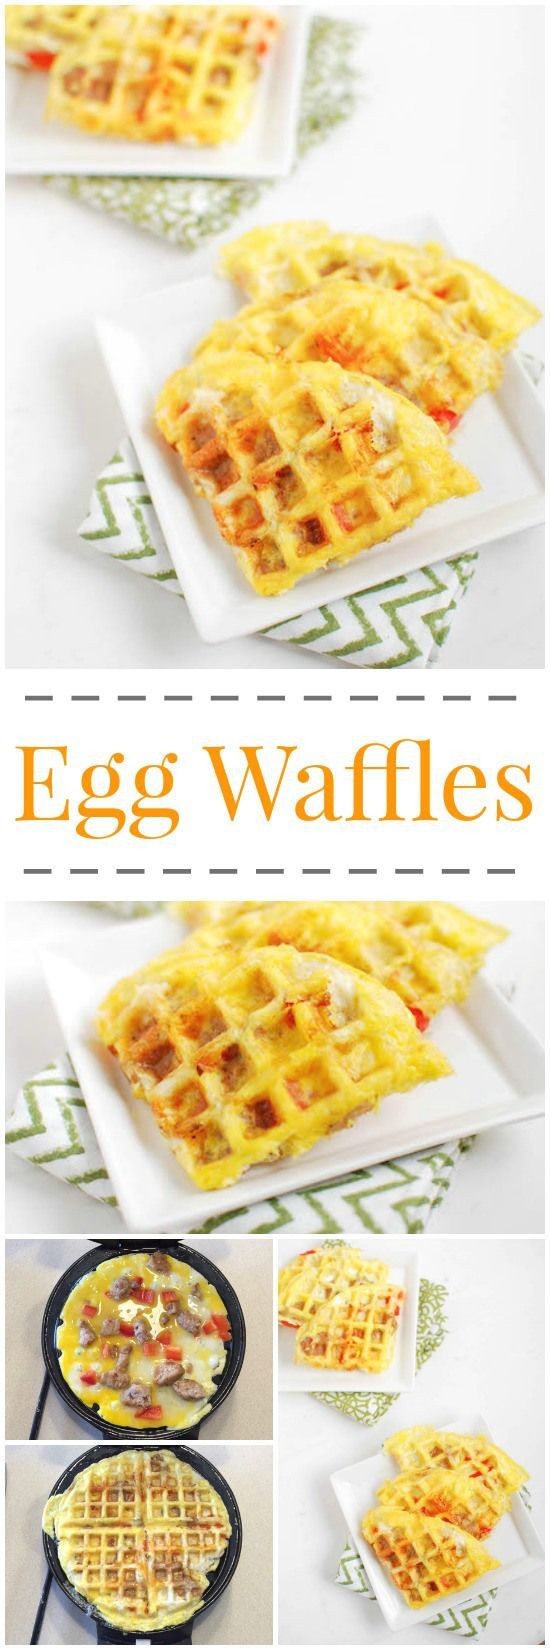 Ready in one minute and easy to customize, after trying these Egg Waffles you'll never want to cook eggs in a pan again!